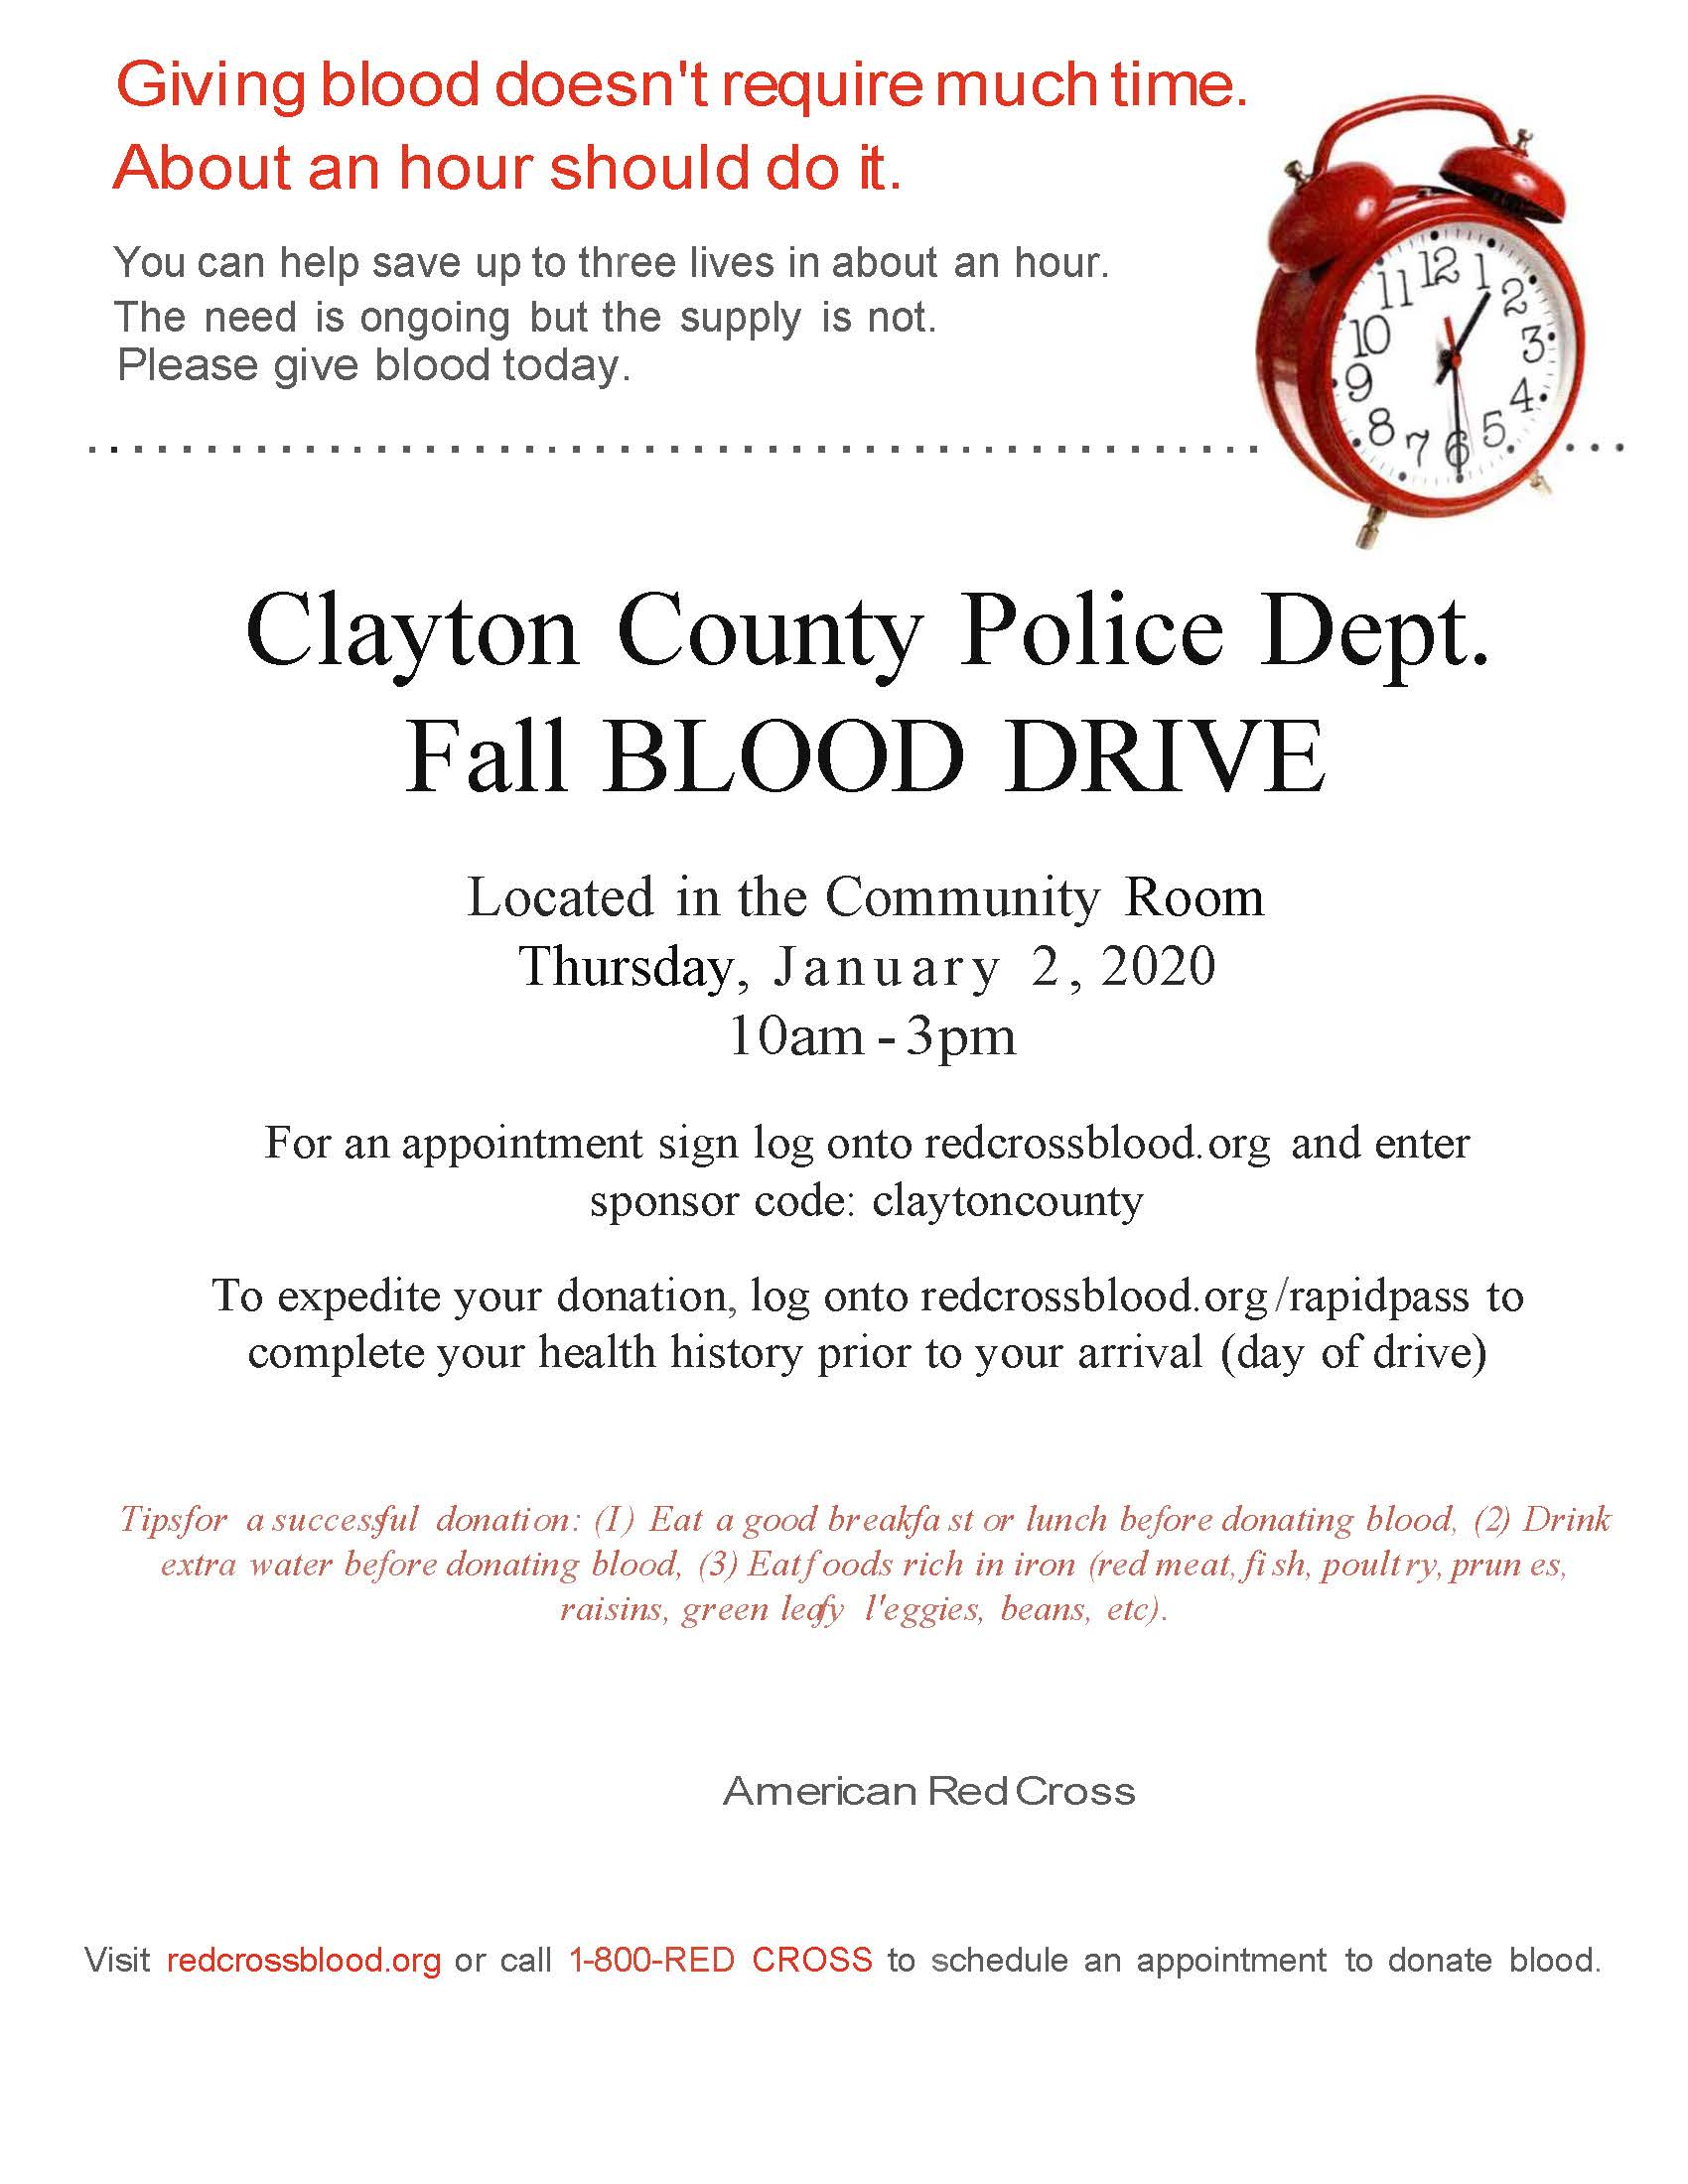 CCPD-Blood-Drive 1.2.20